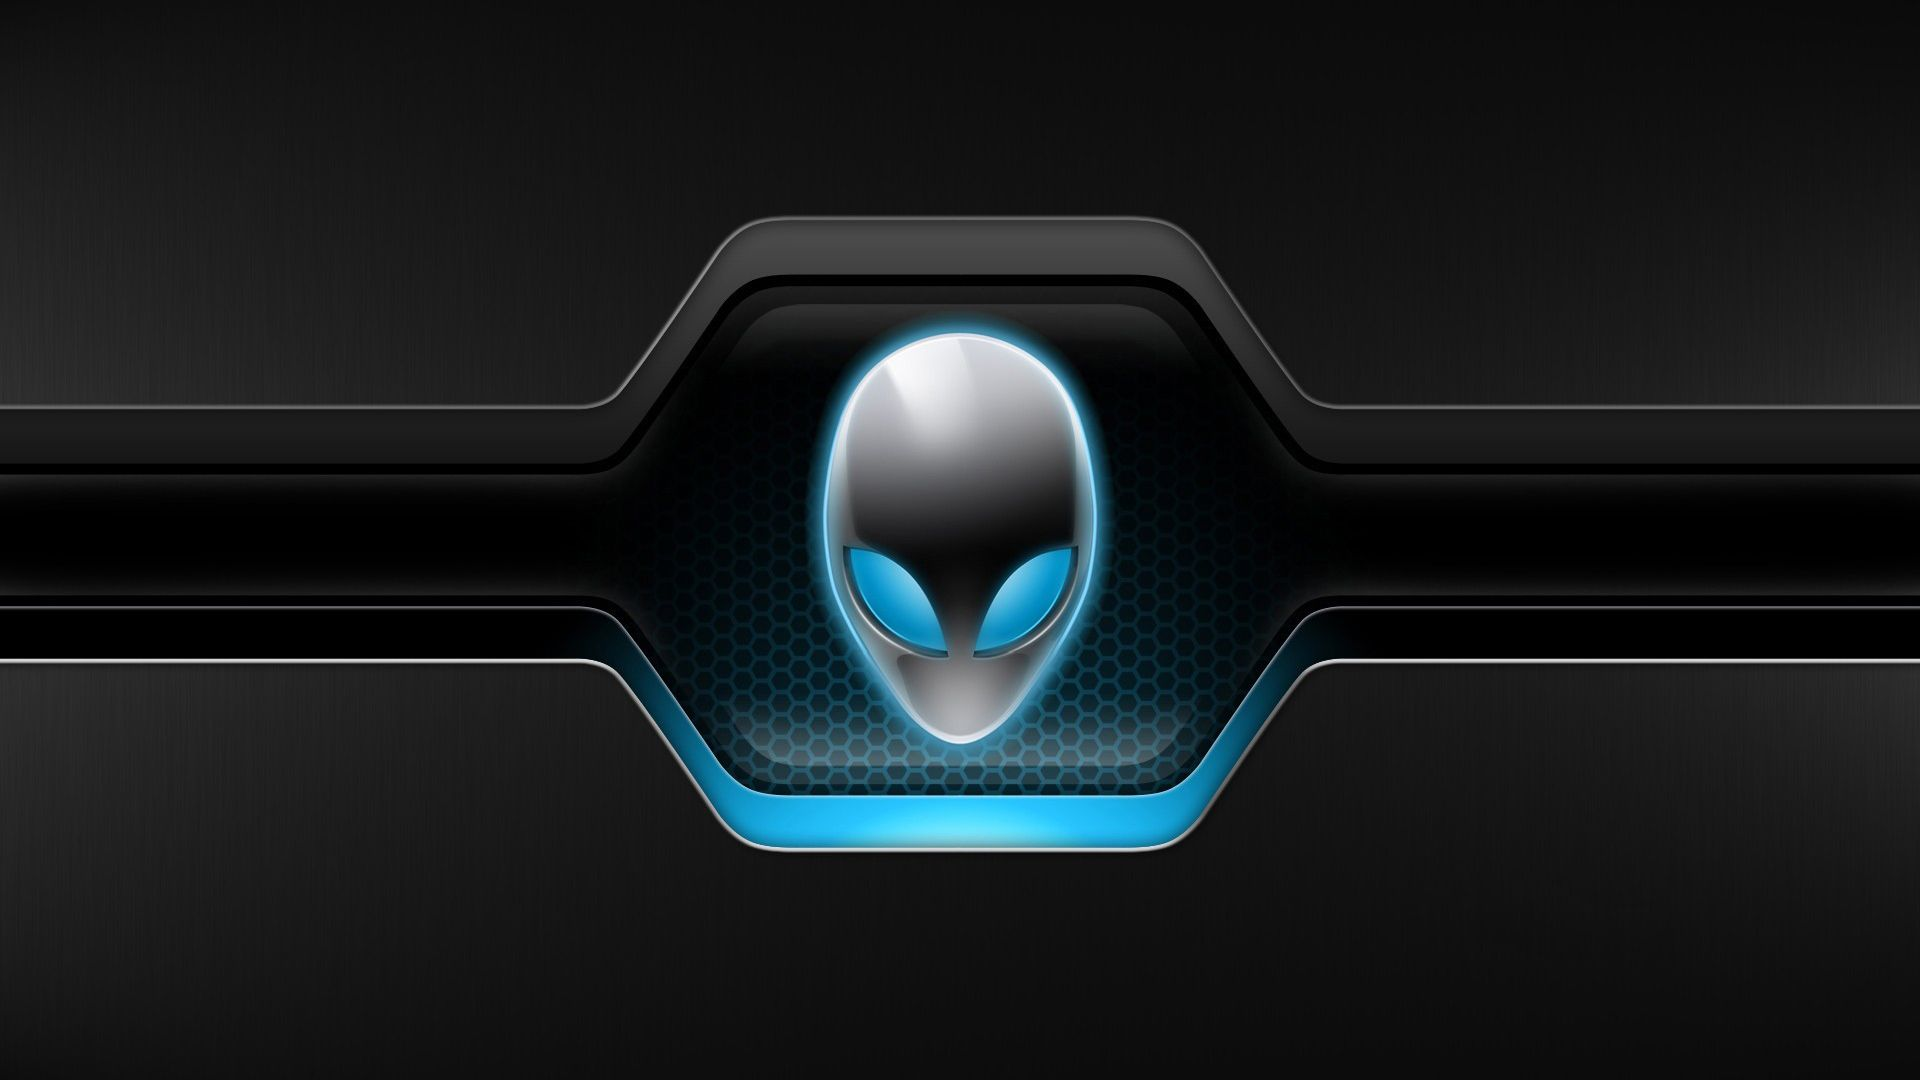 Dell Alienware Cool Wallpaper Car Game Cool Alienware Wallpaper Sf Wallpaper Wallpaperzen Org